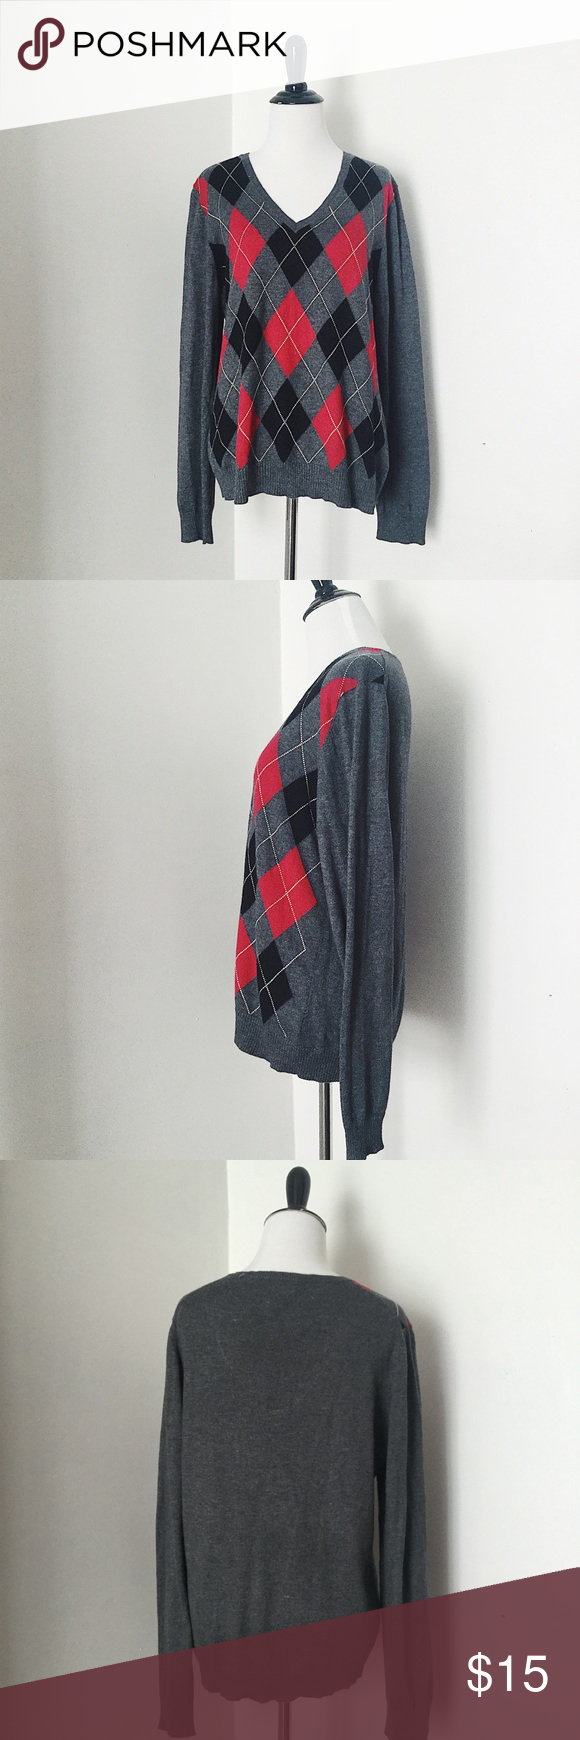 Gray & Red 100% cashmere Argyle sweater | Cashmere sweaters ...